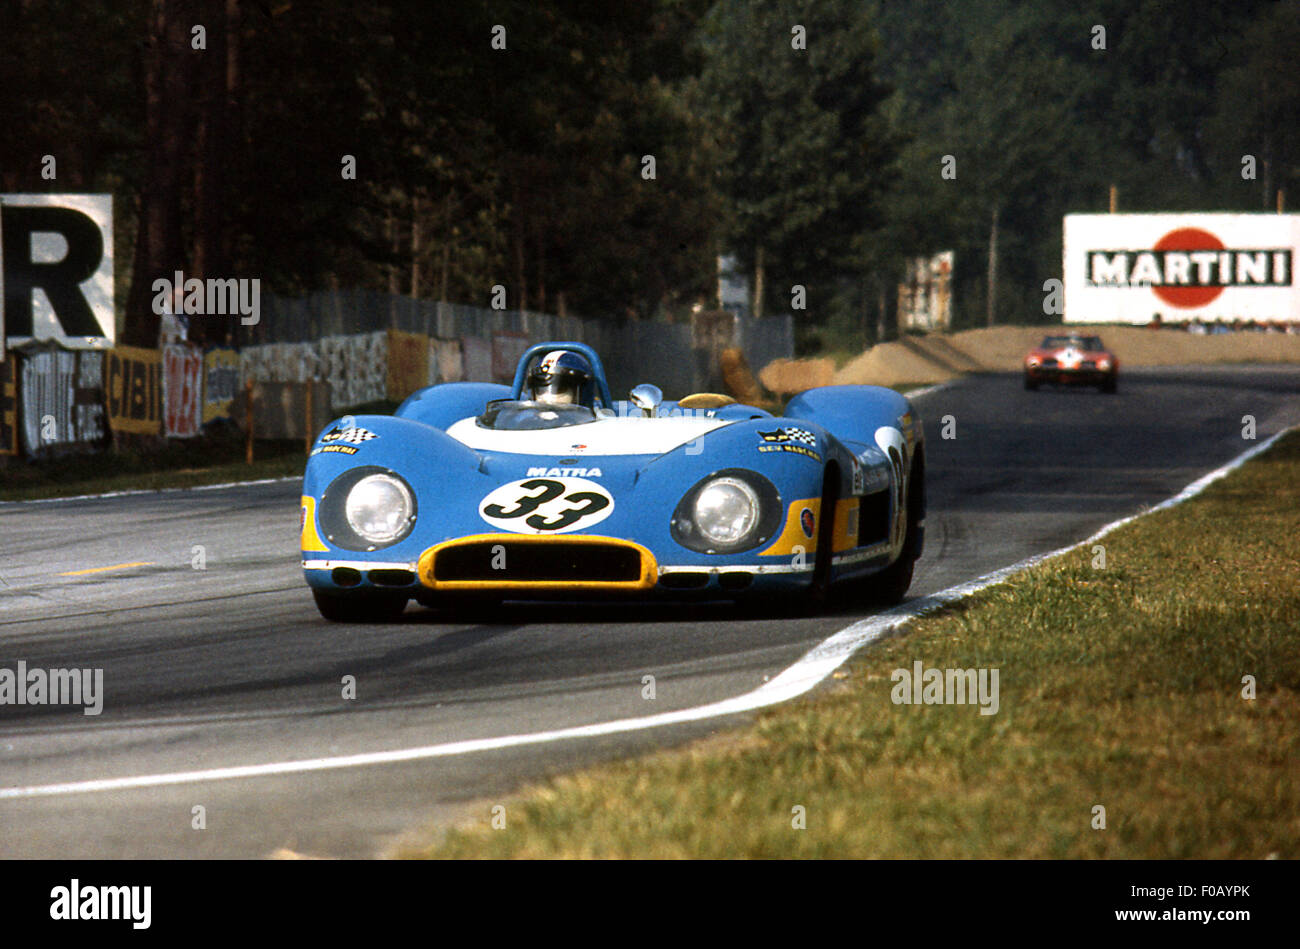 le mans 1969 le mans beltoise matra ms650 stock photo 86293163 alamy. Black Bedroom Furniture Sets. Home Design Ideas